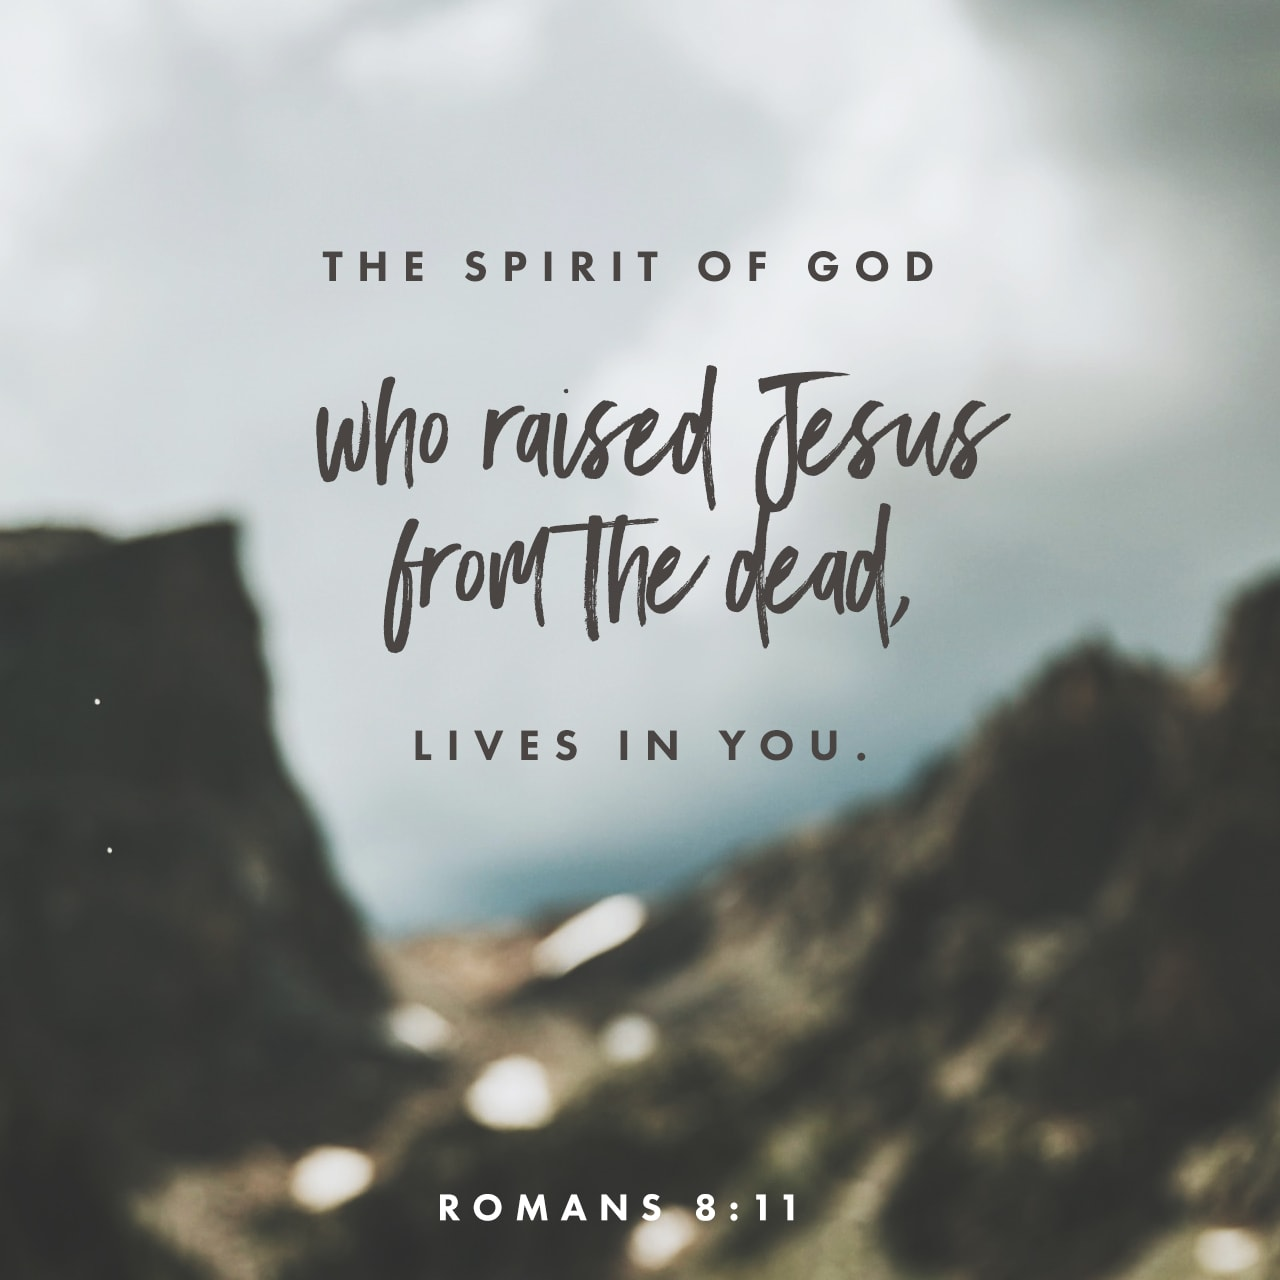 Verse Image: Romans 8:11, New Living Translation